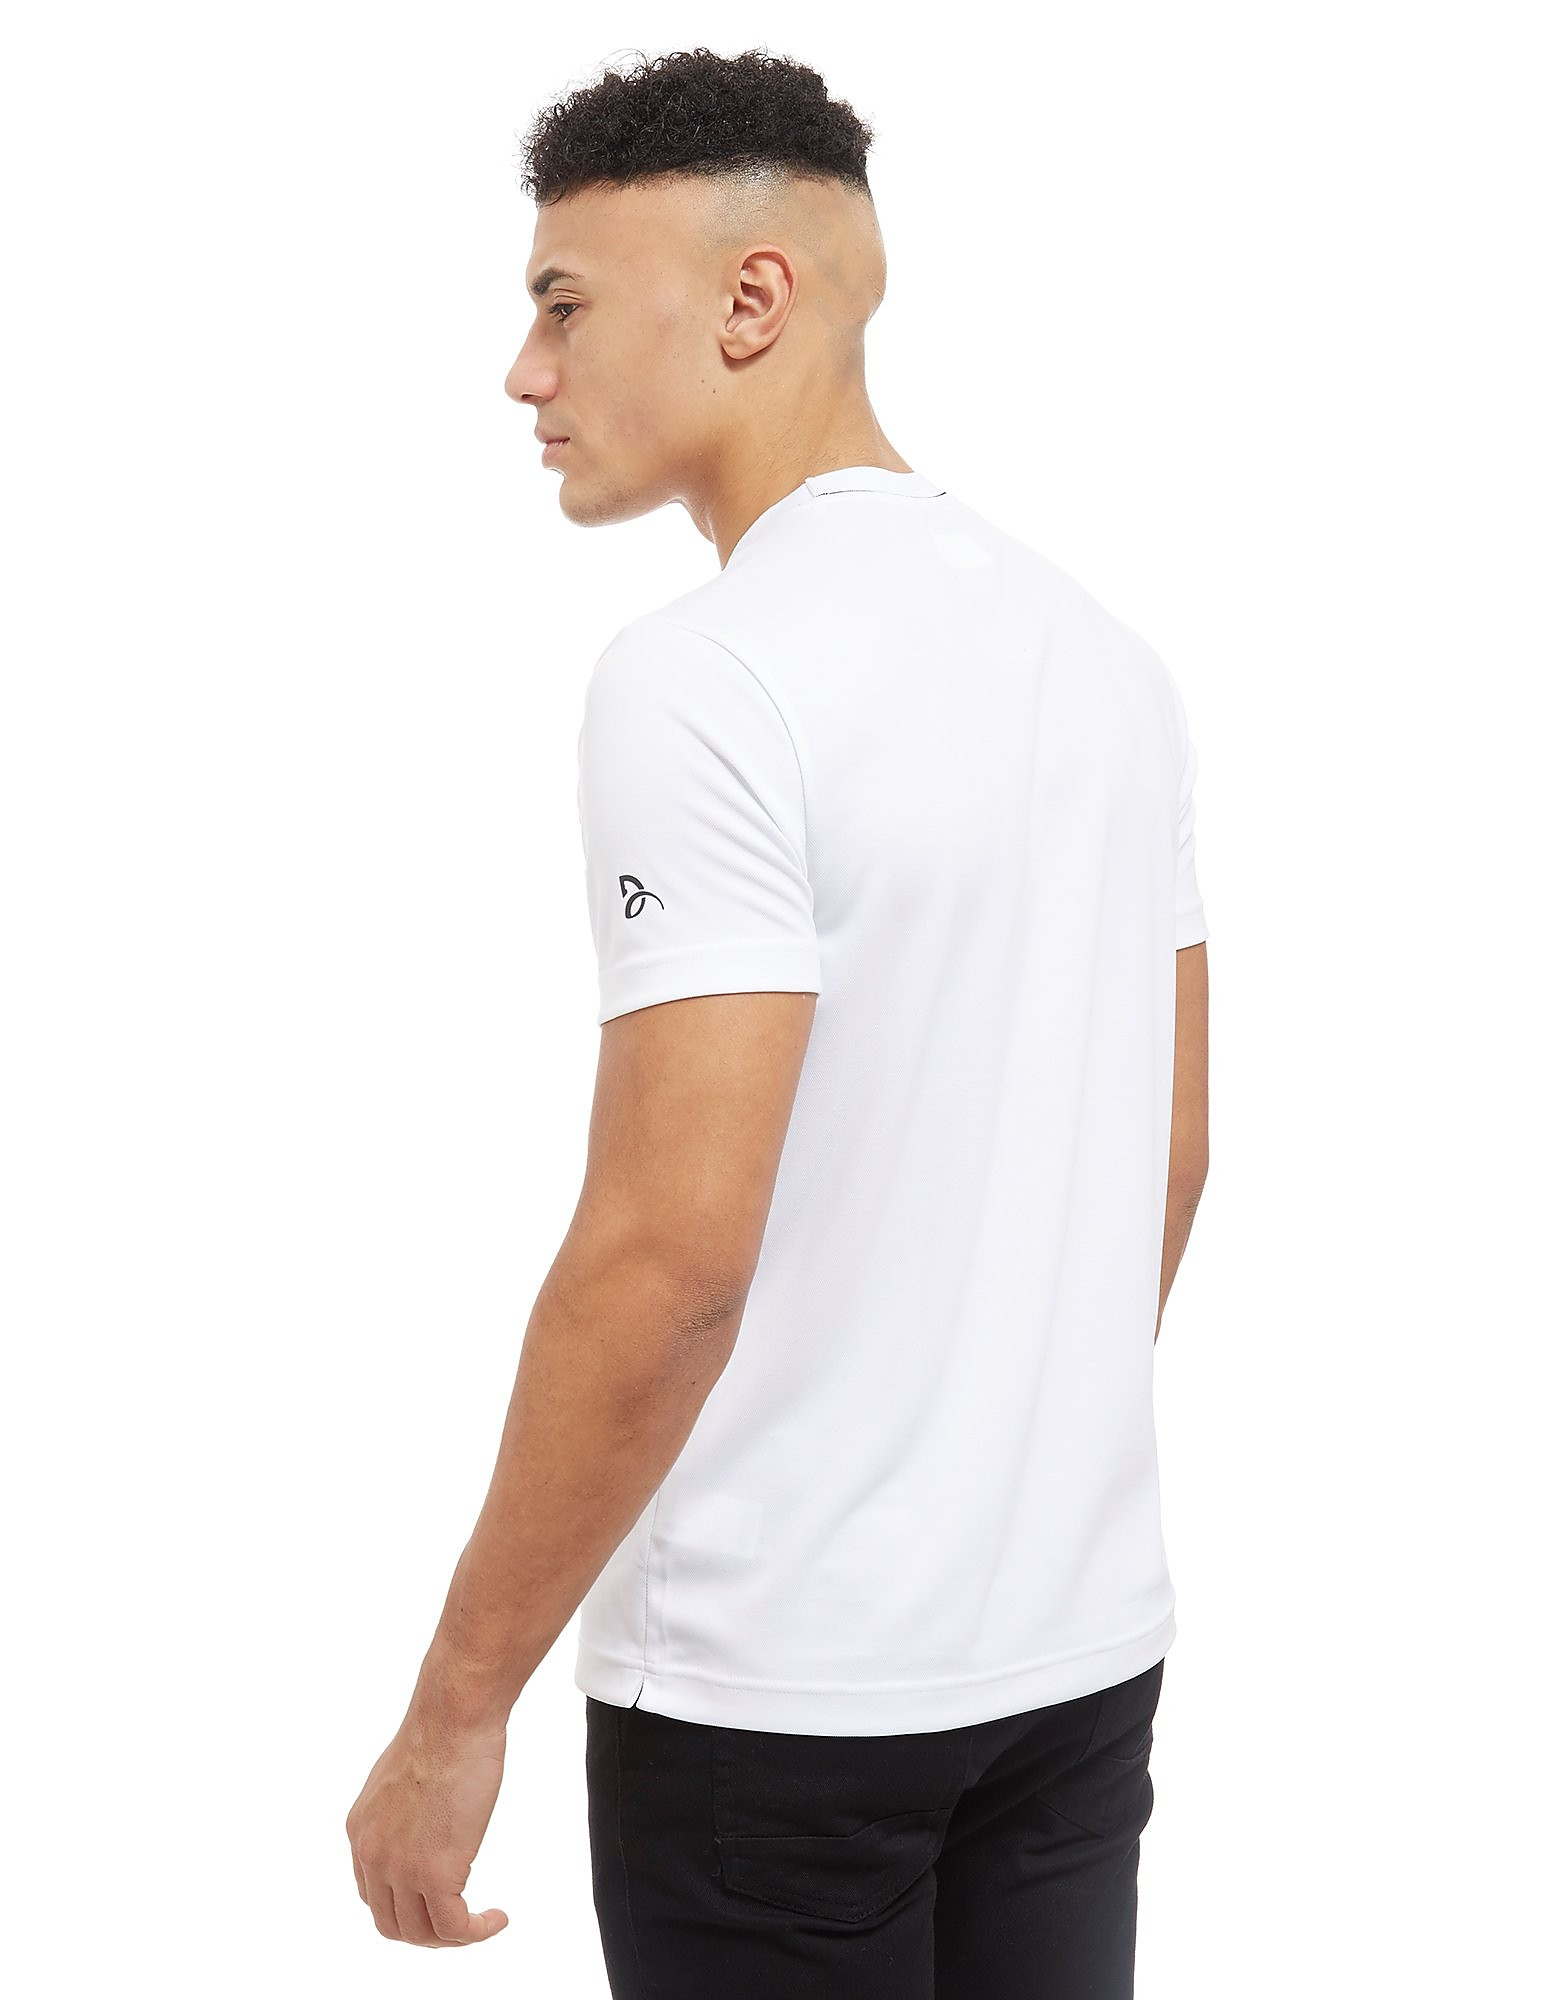 Lacoste T-shirt Djokovic Colourblock Tech Homme